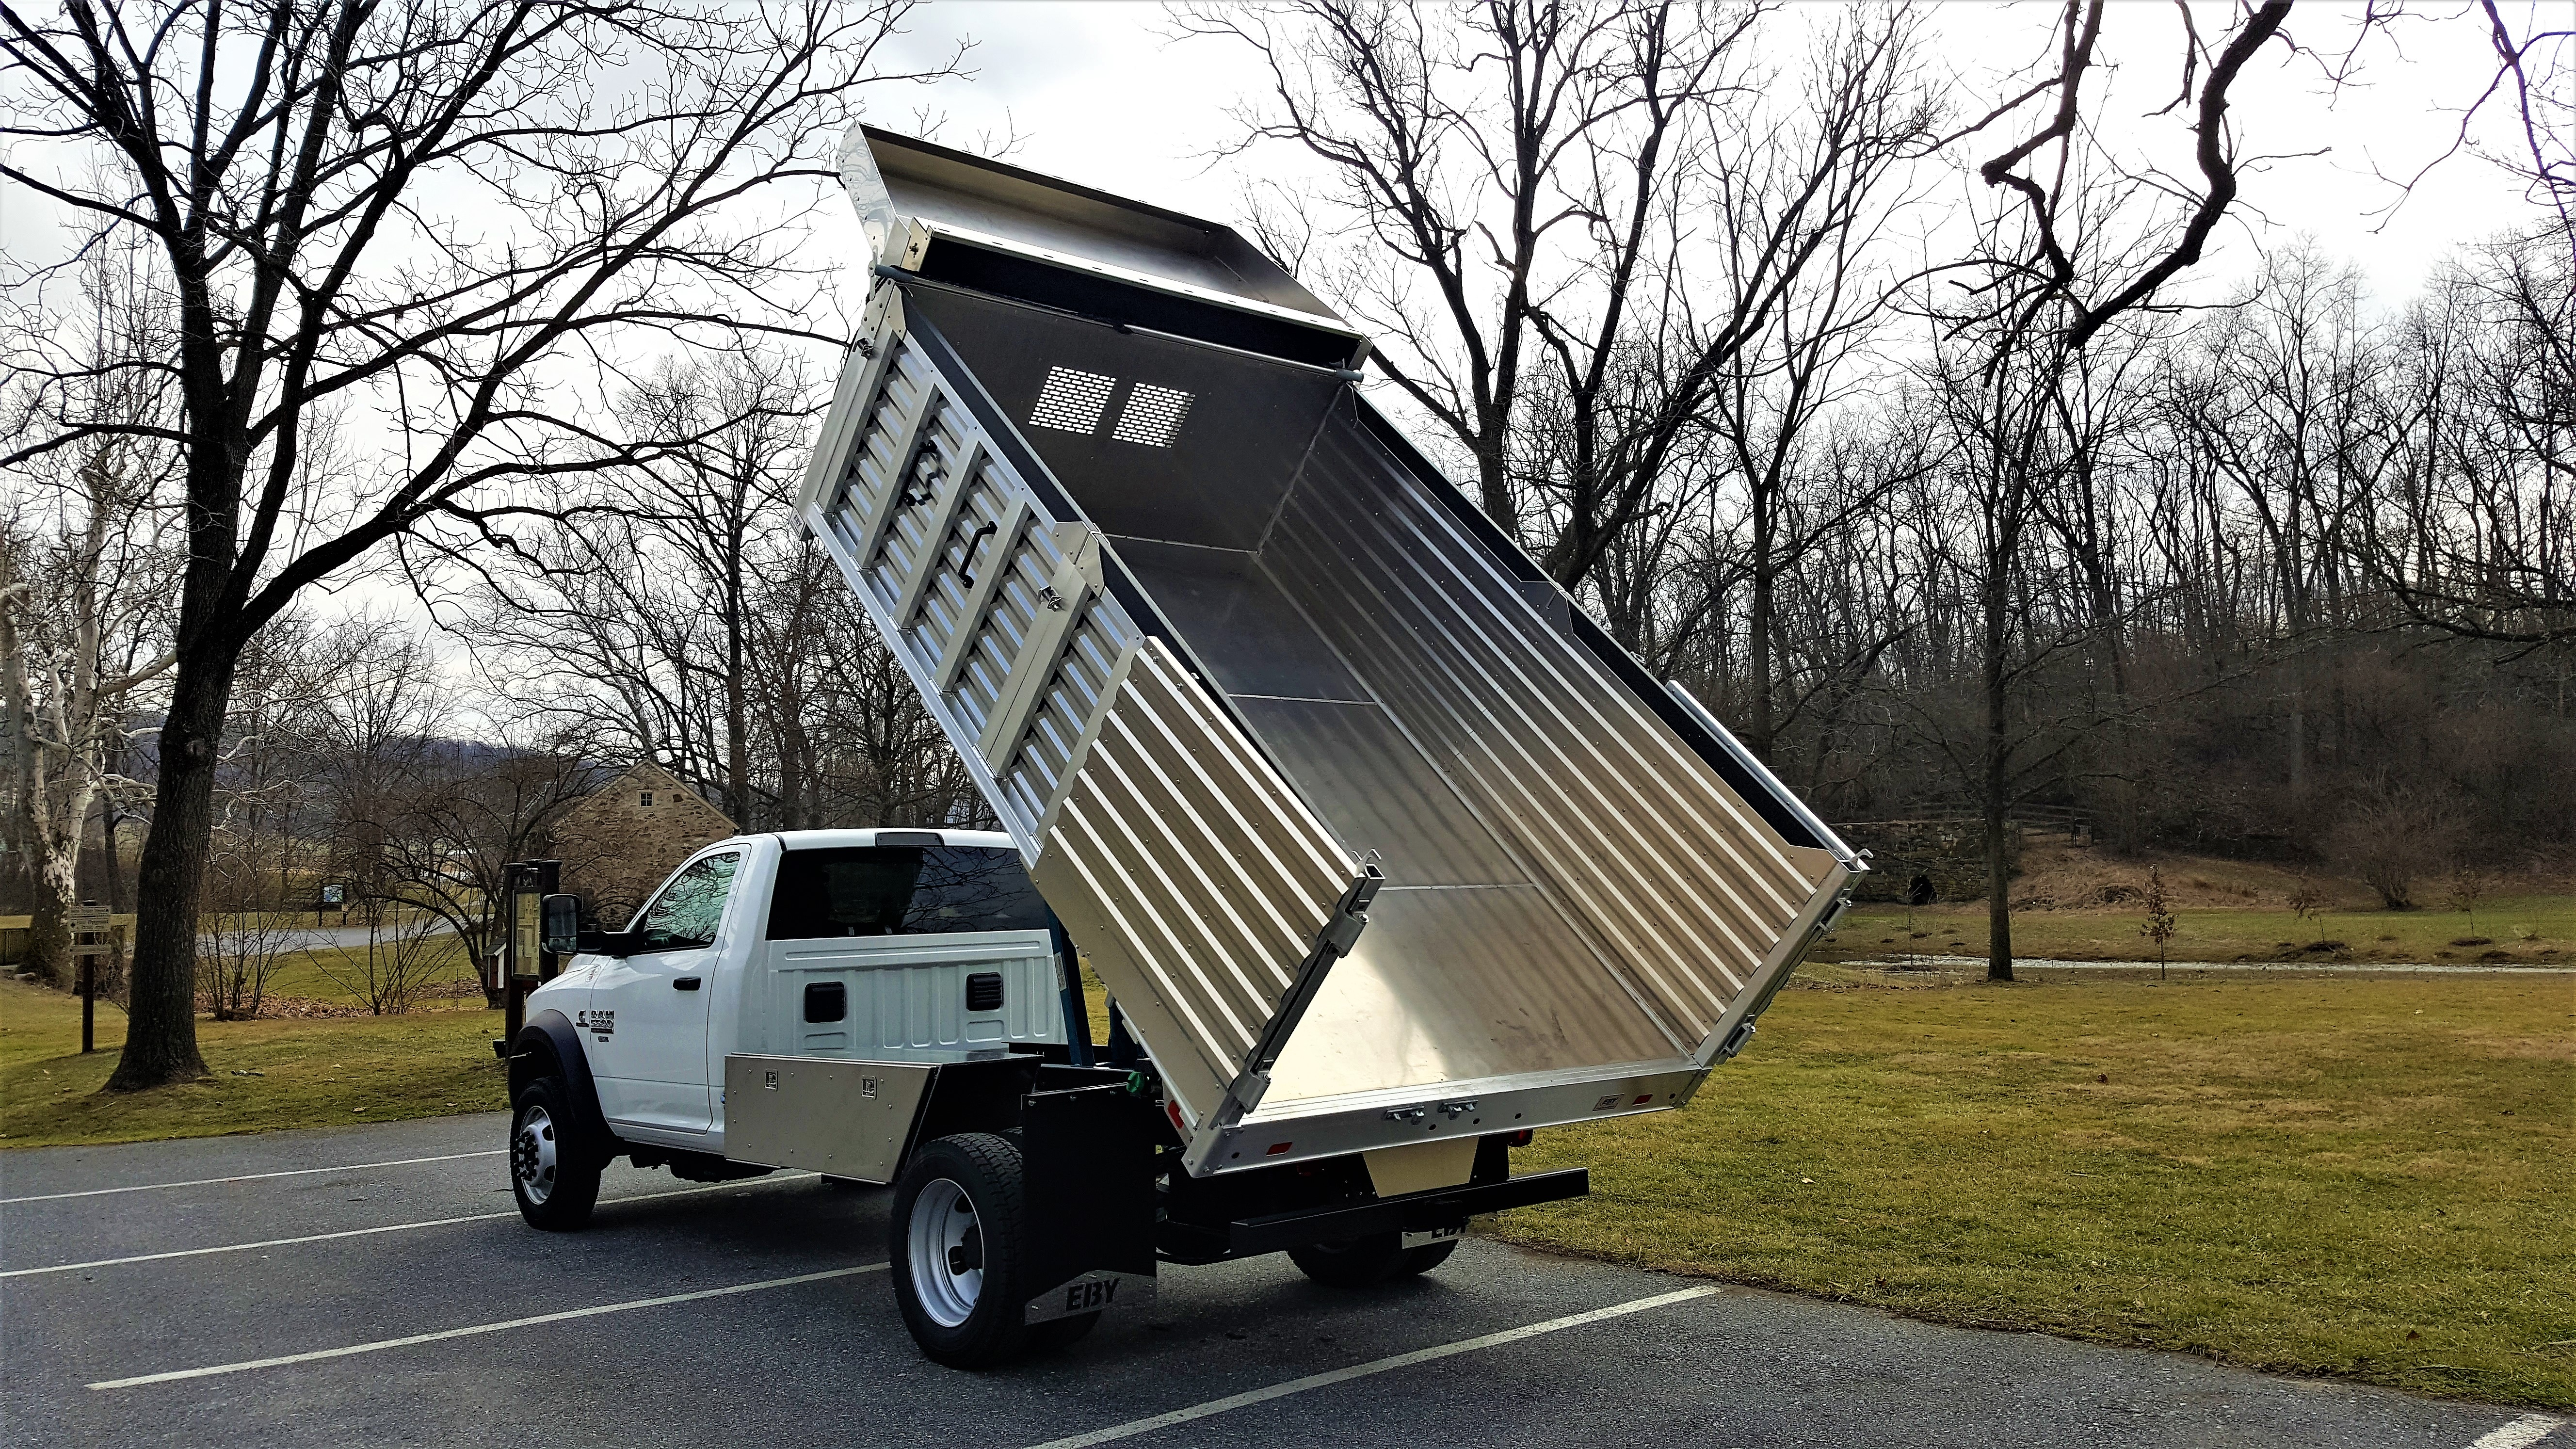 Picture of: Flex Landscape Body Aluminum Trailer And Truck Body Experts In Pa Eby Trailers Shop Dry Vans Reefer Trailers And Aluminum Truck Beds For Sale In Pa Including Reefer Trailers In Pa